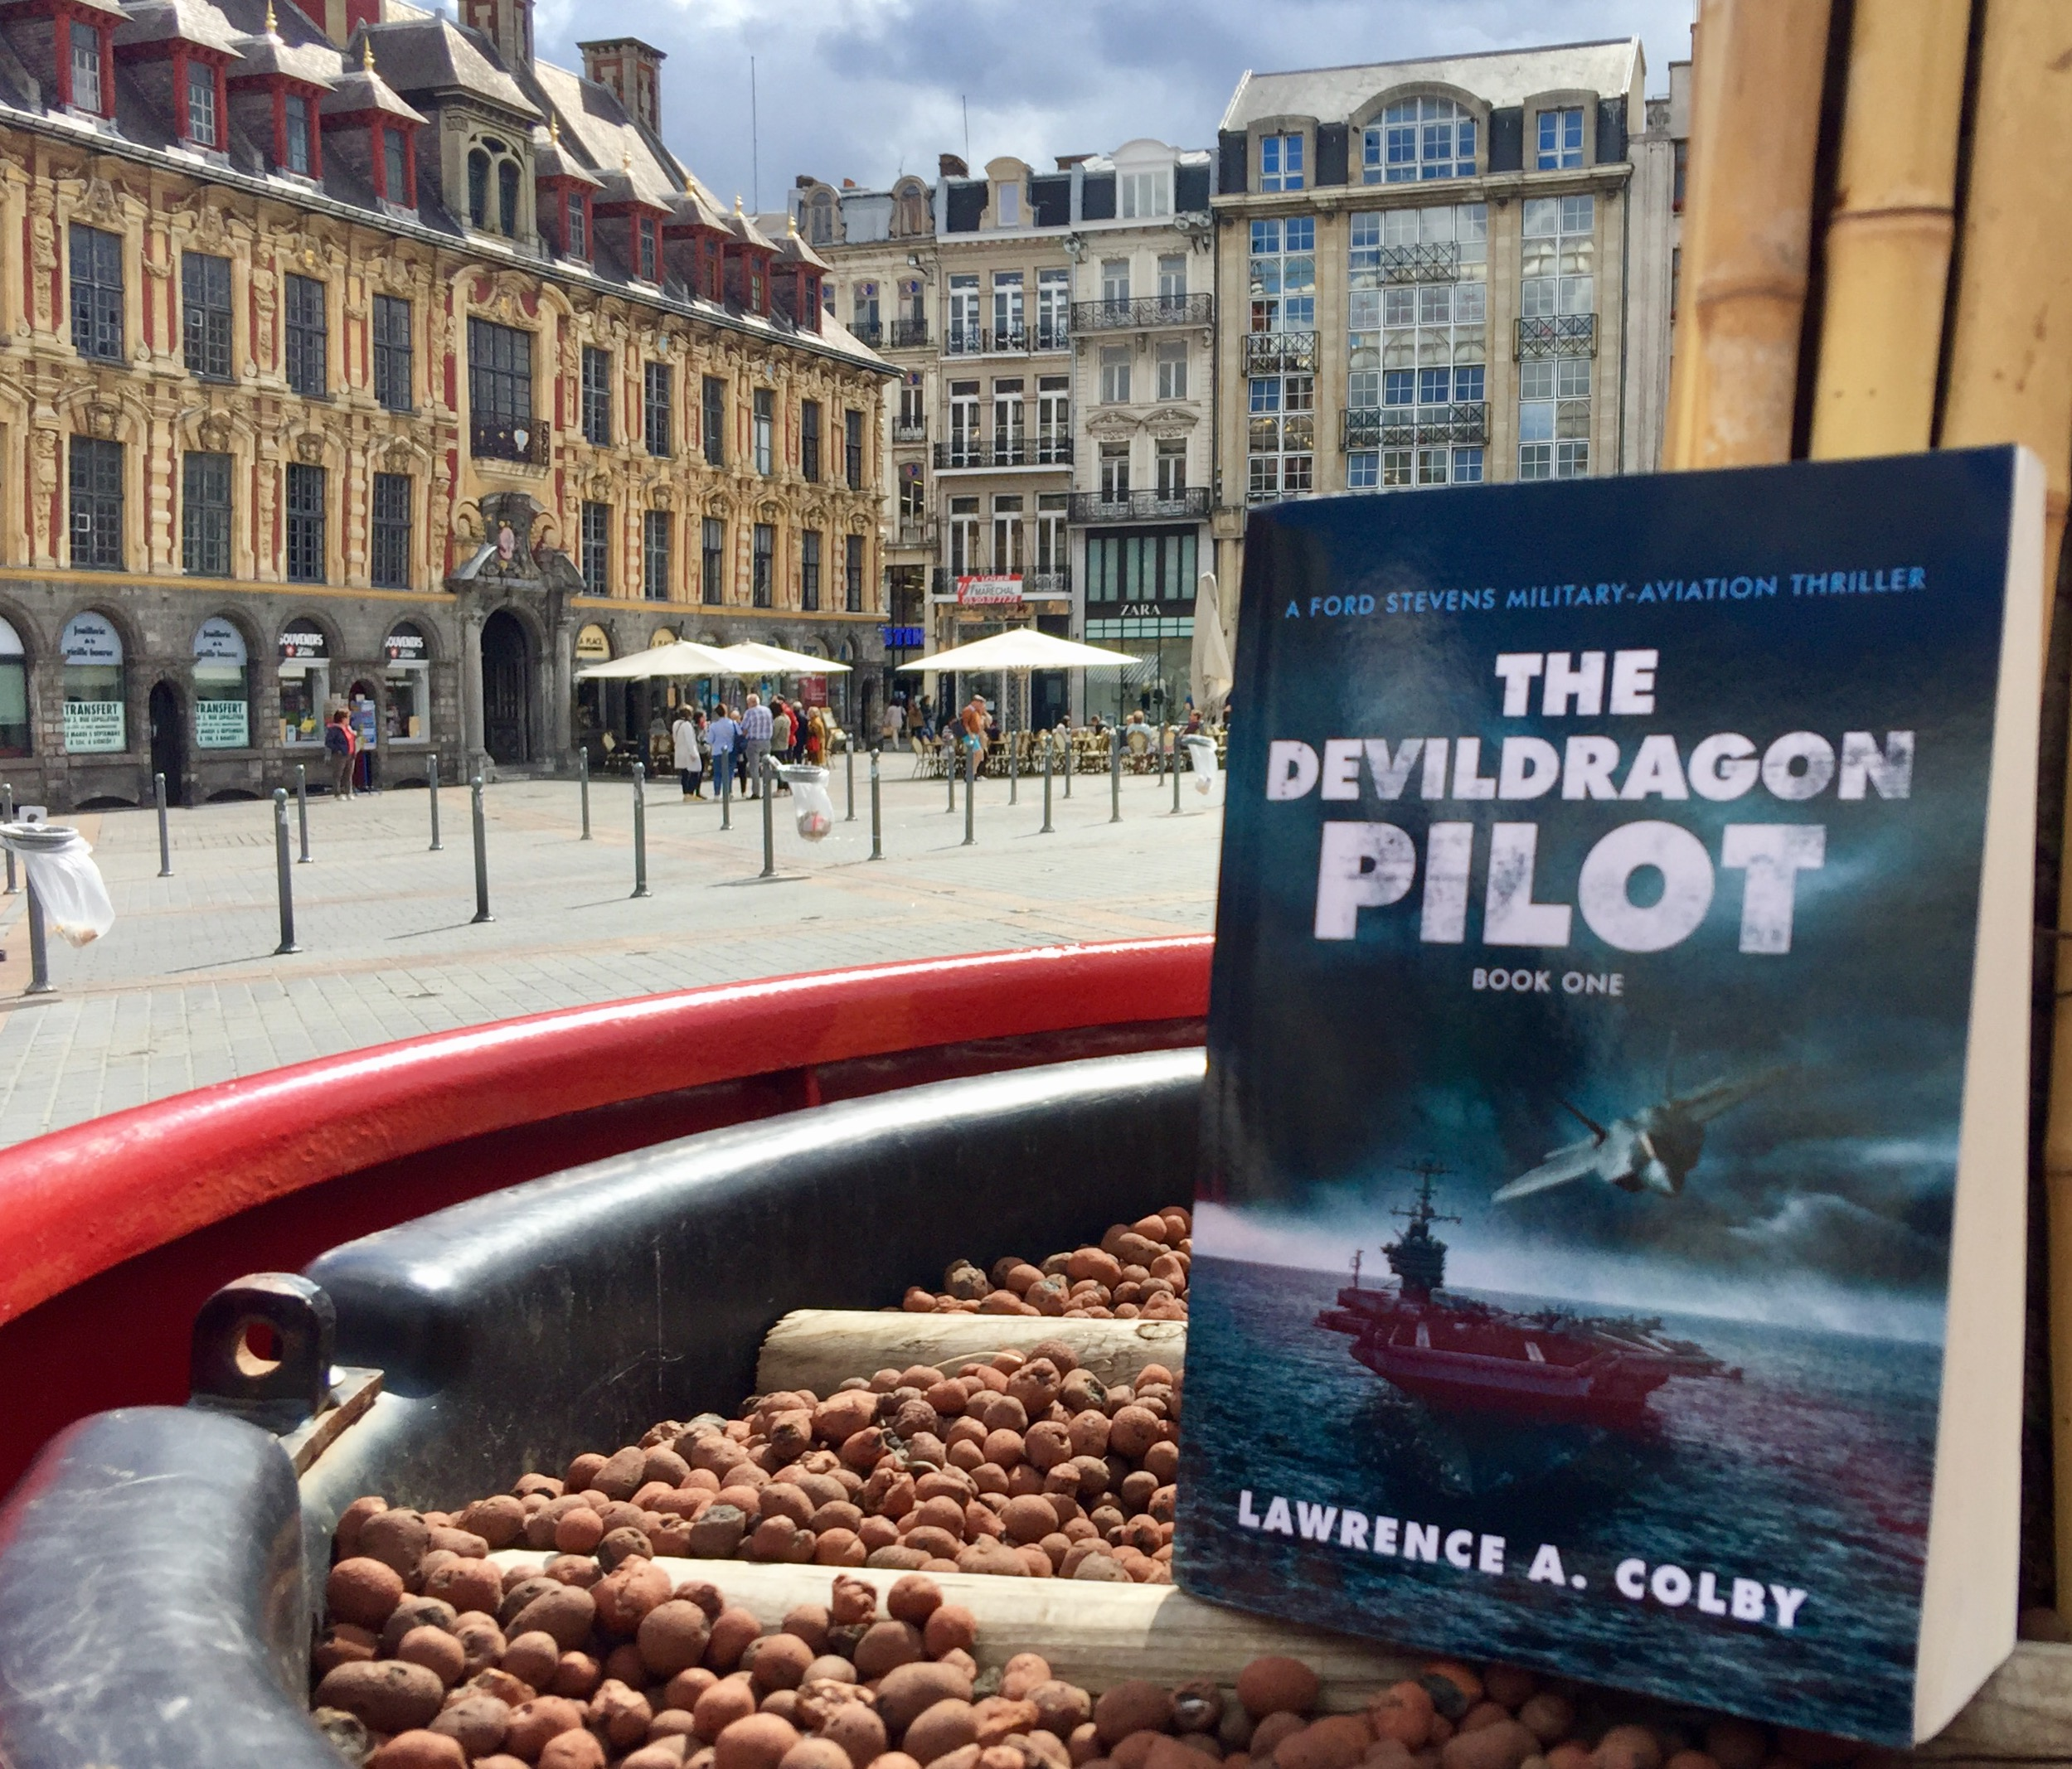 The Devil Dragon Pilot in France!